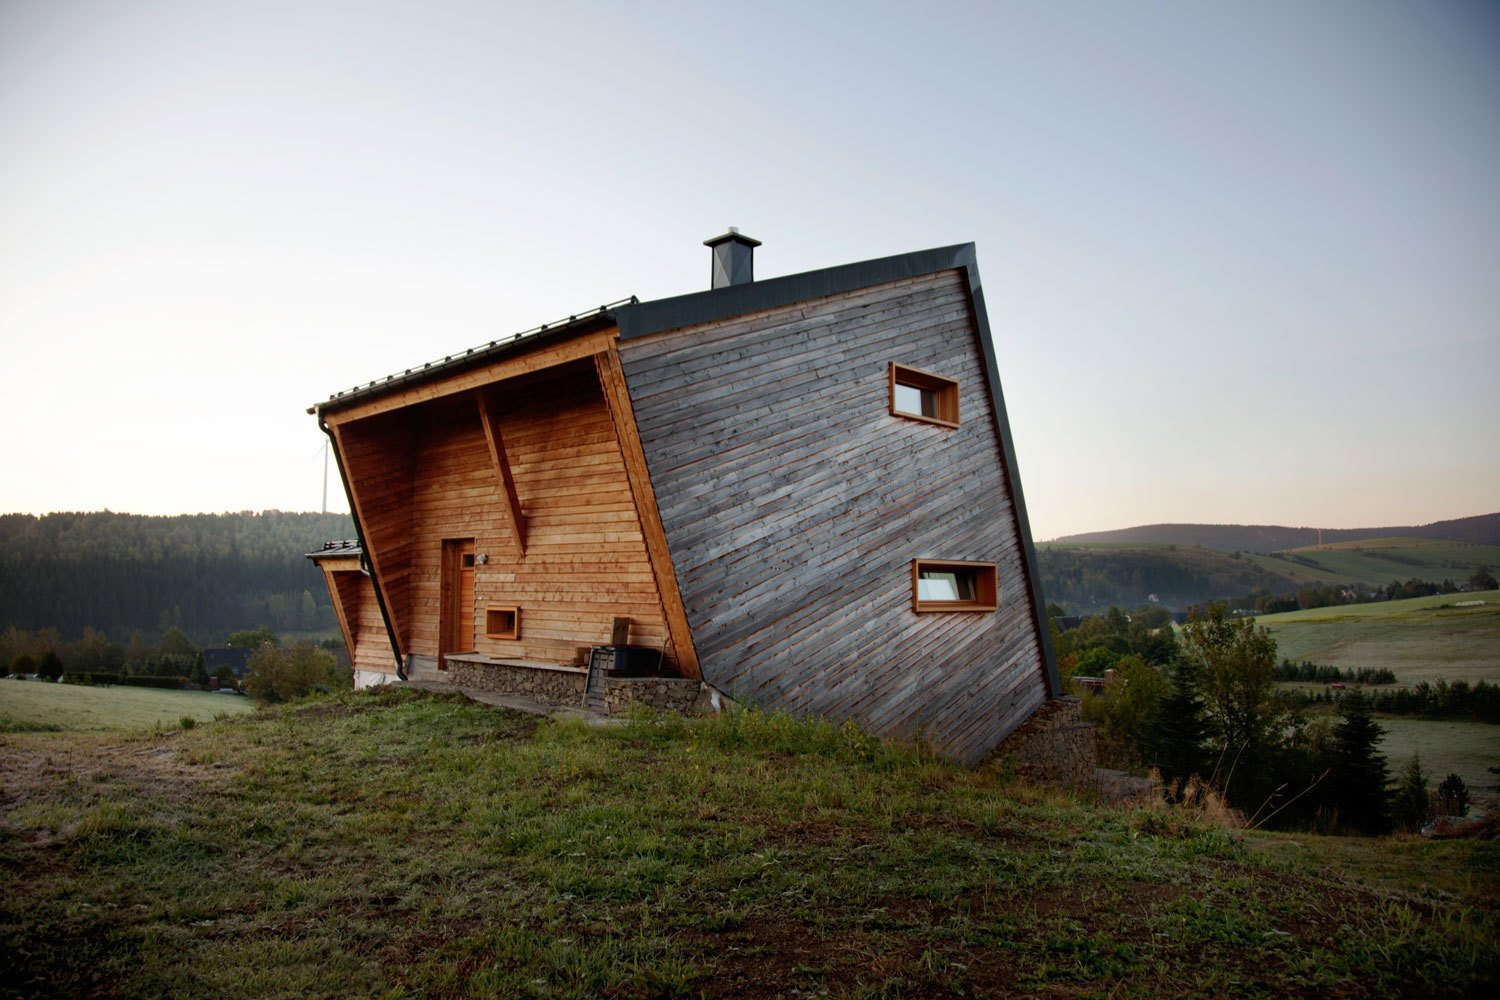 Exterior, Cabin Building Type, Tiny Home Building Type, Wood Siding Material, and Metal Roof Material Sebastian Heise's wooden structure, seemingly atilt, overlooks a green valley in Oberwiesenthal, Germany. The two horizontal windows on the side and the front porch give the home its own unique sense of balance.  Photo 25 of 101 in 101 Best Modern Cabins from Tour 8 Awesome Tiny Cabins Around the World